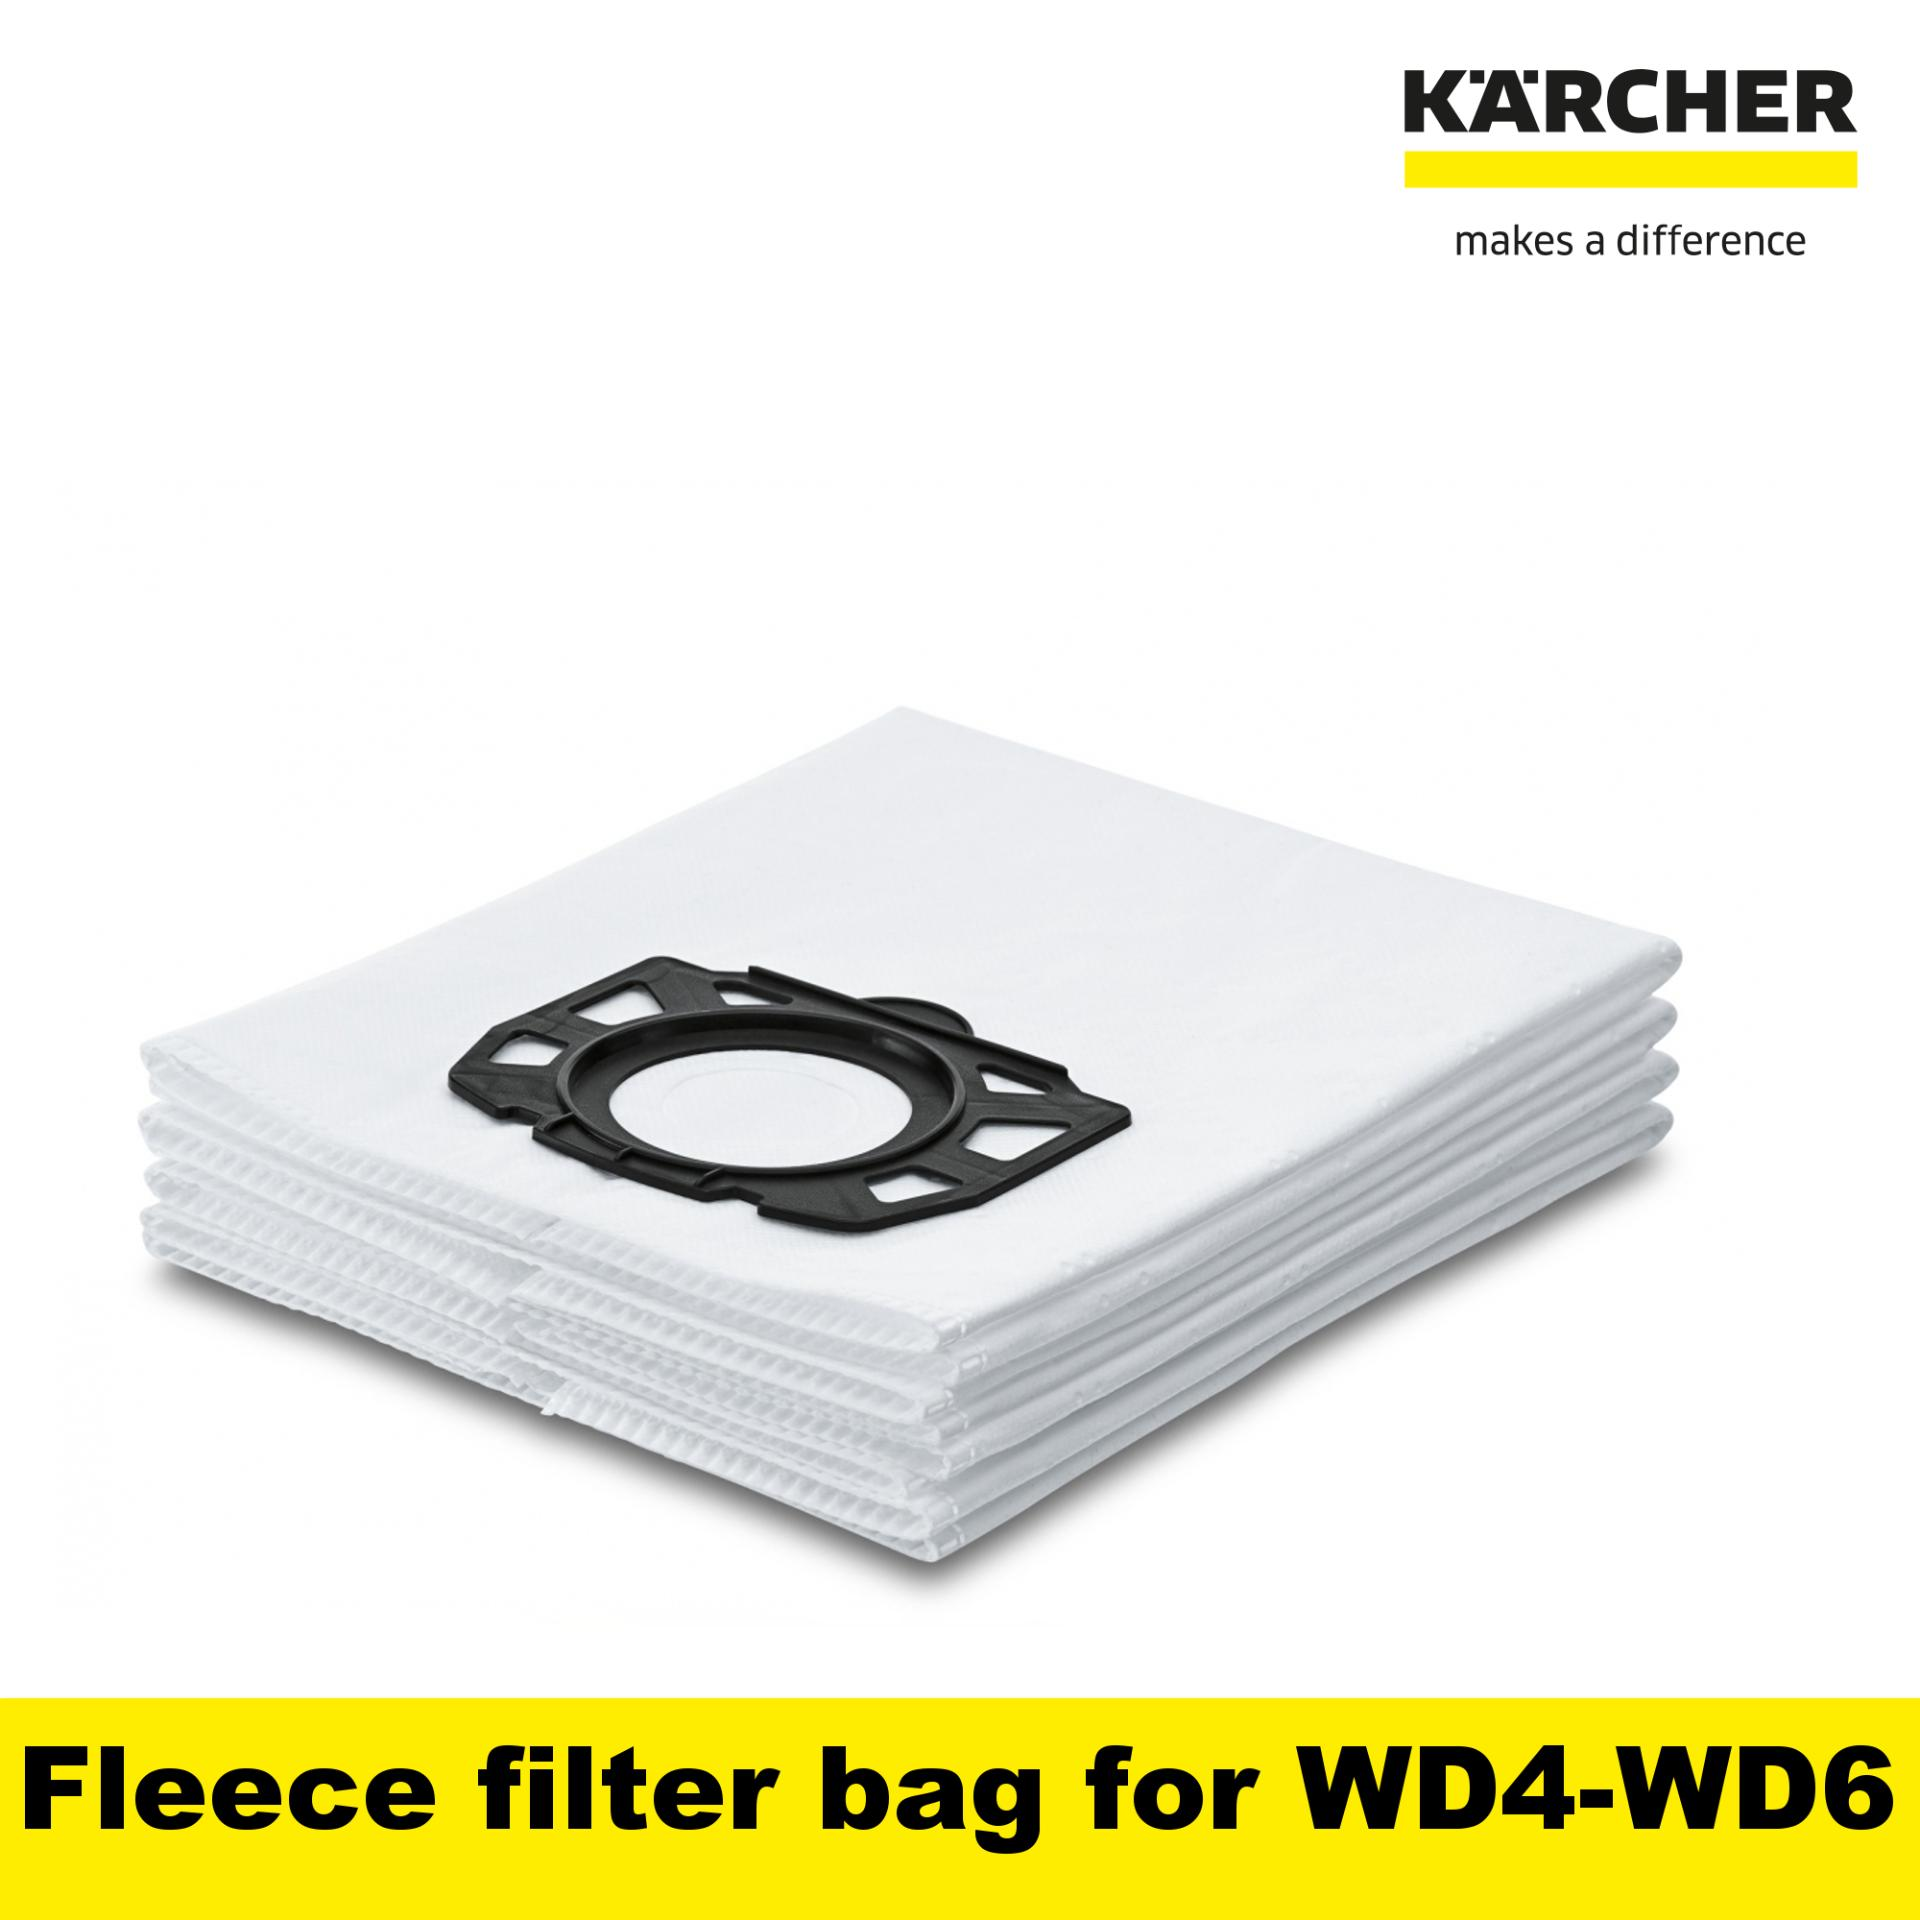 21a7f7d50 Karcher Philippines: Karcher price list - Vacuum Cleaners & Washers ...